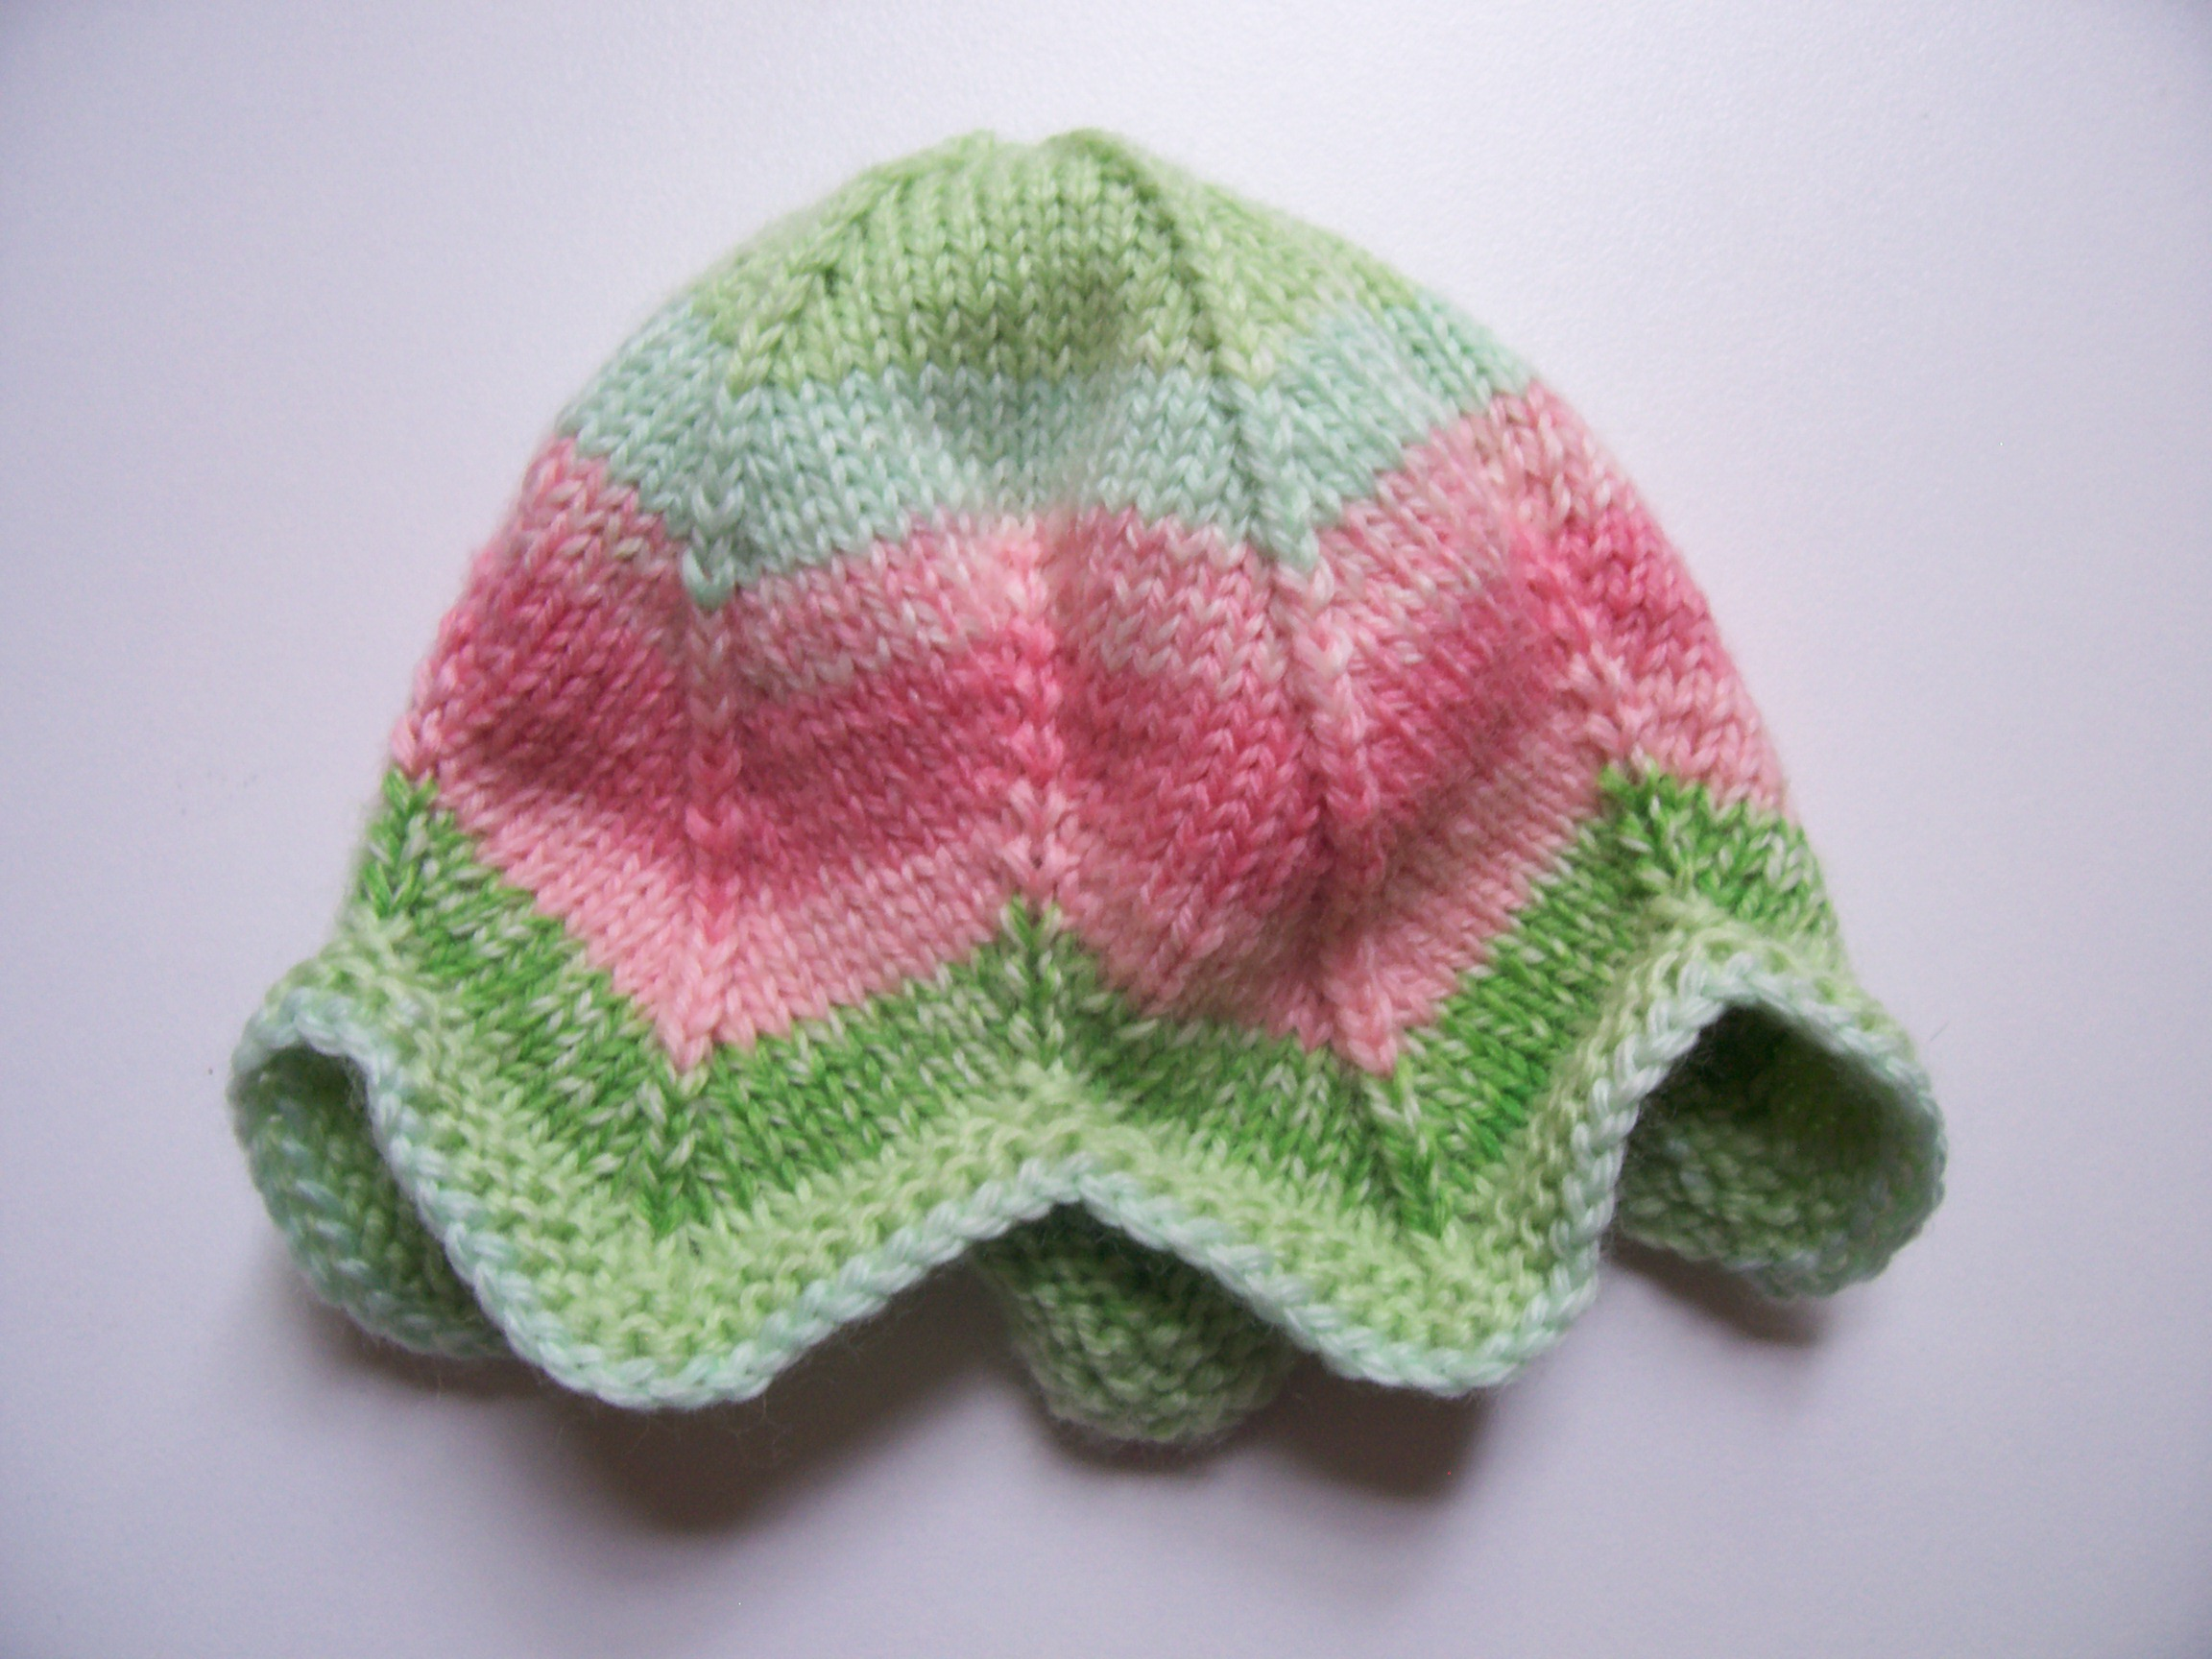 Tulip Preemie Hat, knit in Knit Picks Felici Sport in &quot;Watermelon&quot;